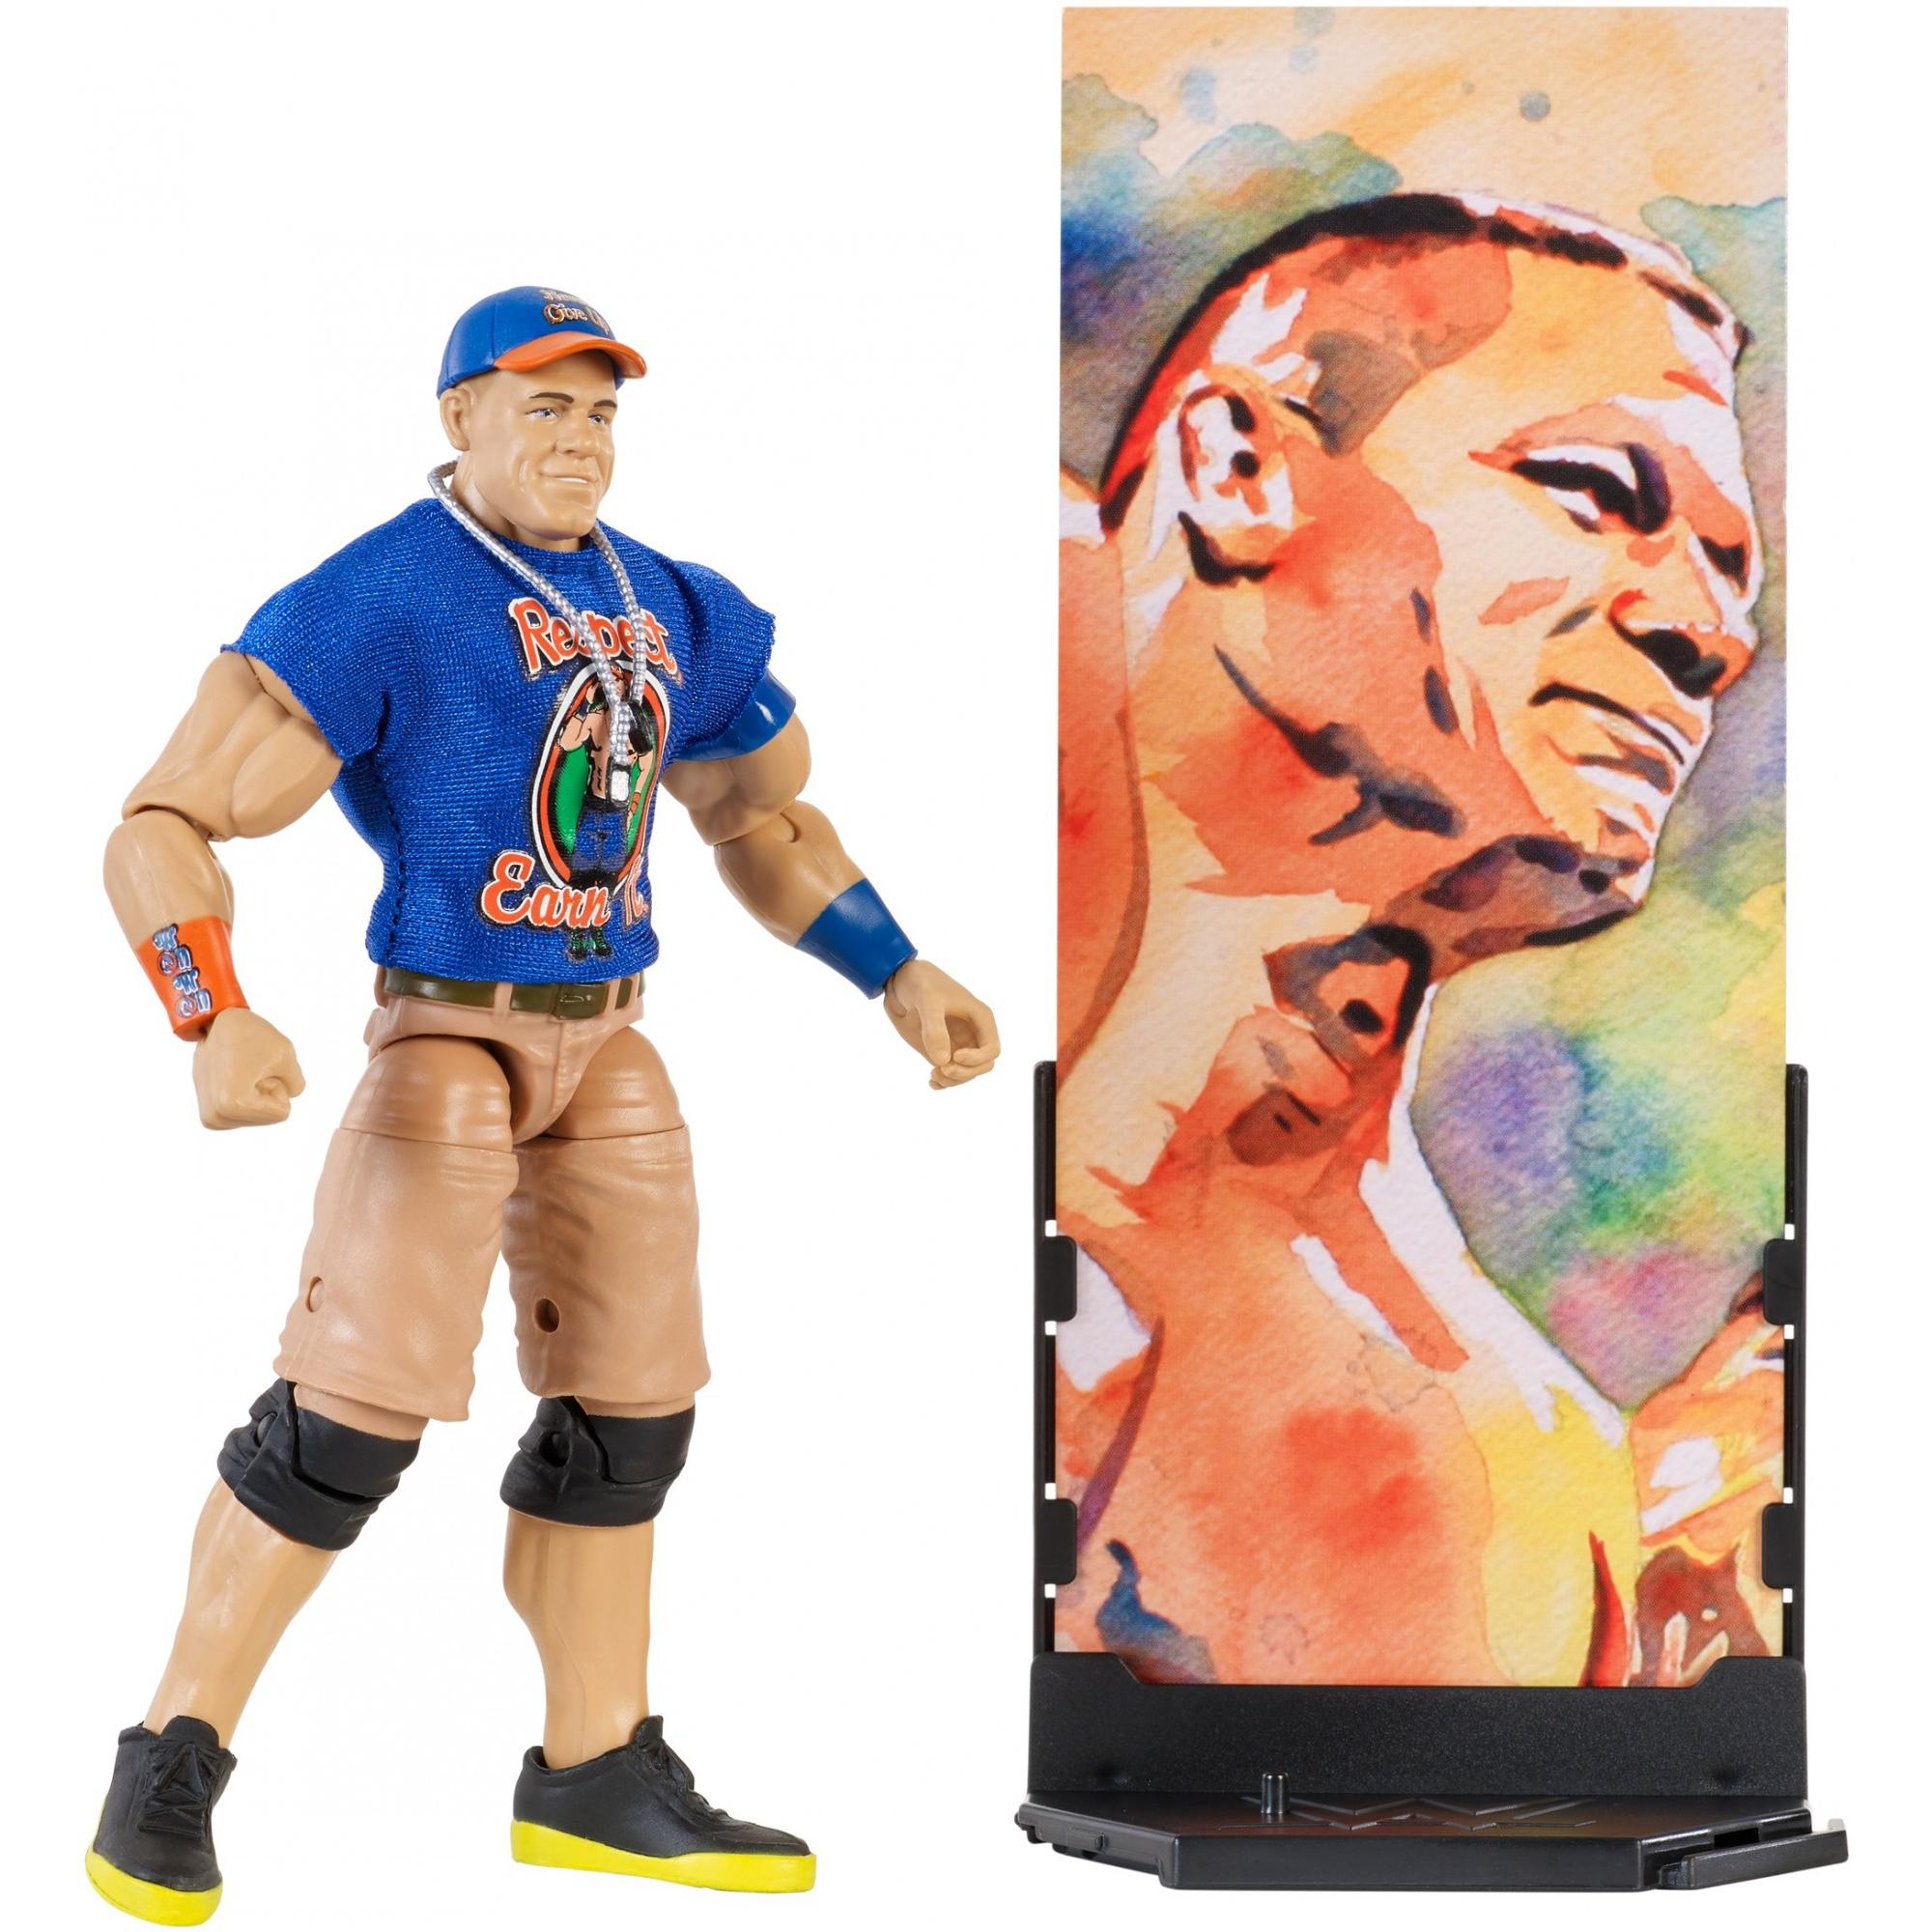 WWE Elite Collection Action Figures (Styles May Vary)